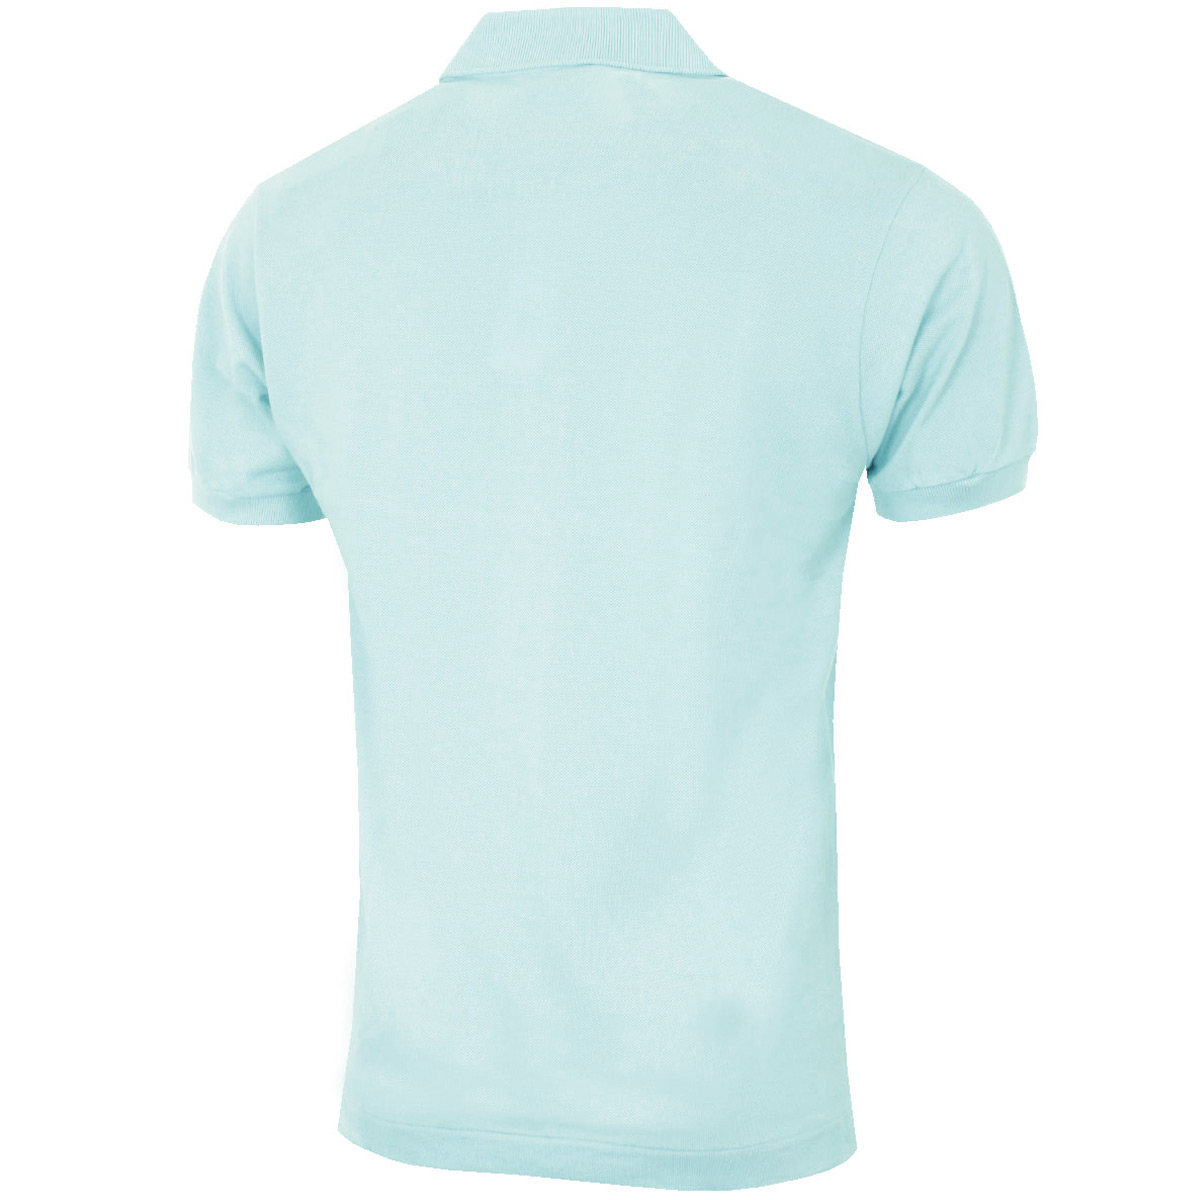 Lacoste-Mens-Classic-Cotton-L1212-Short-Sleeve-Polo-Shirt-31-OFF-RRP thumbnail 31